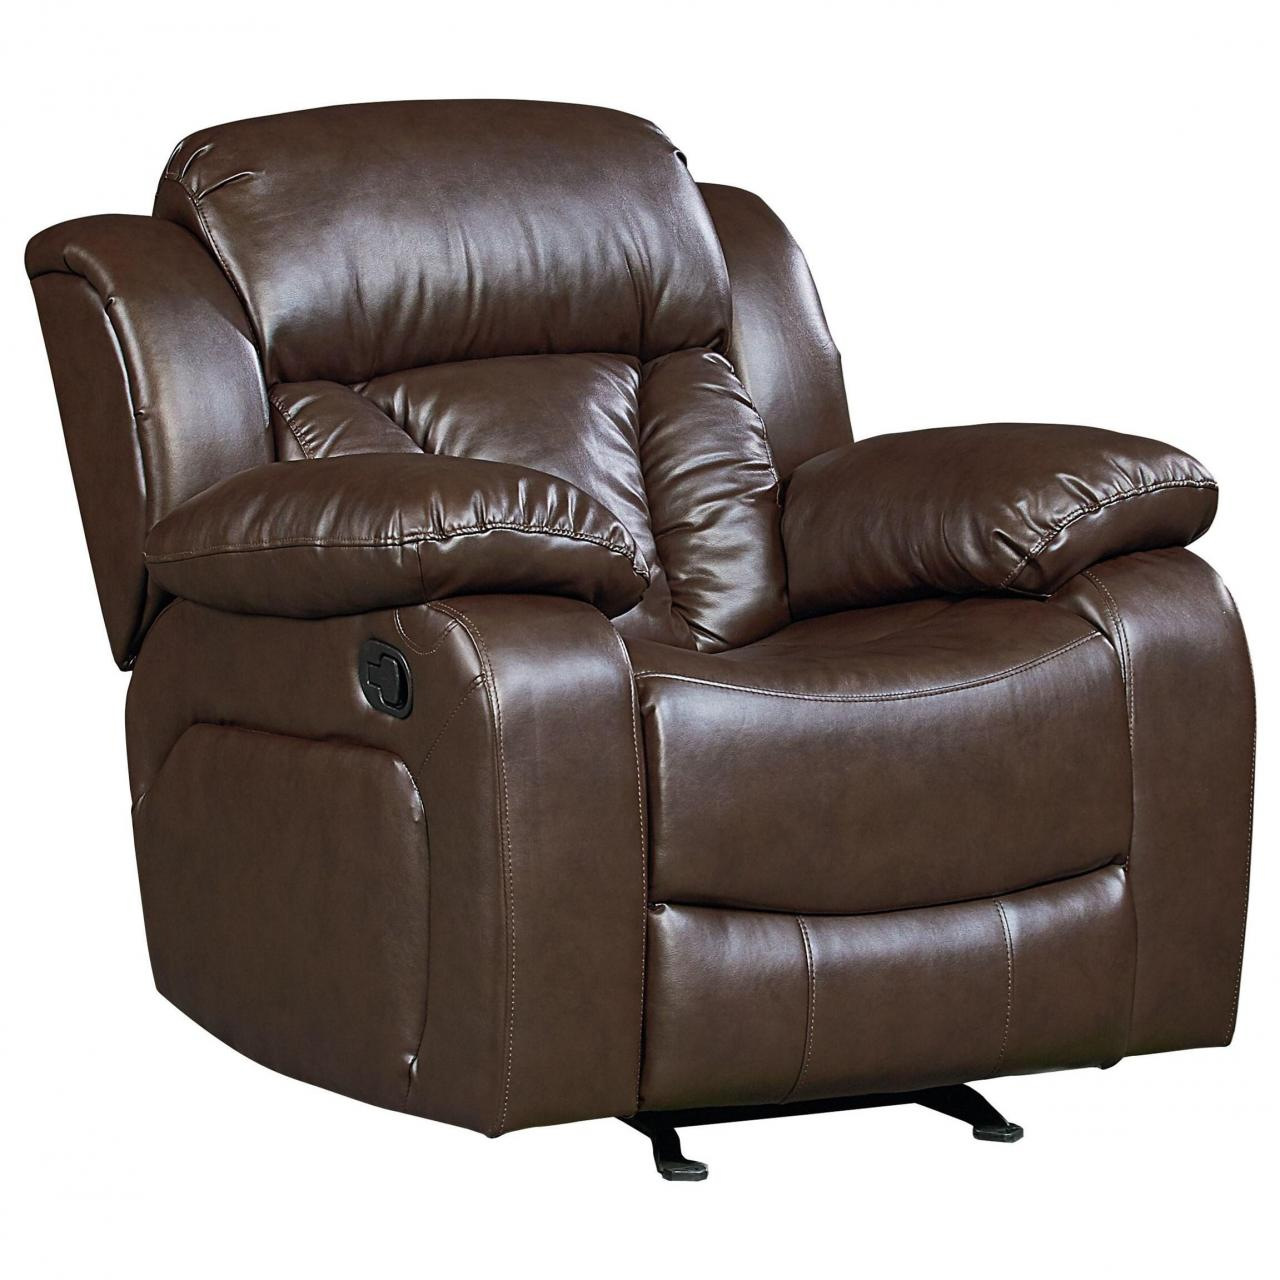 China Faux Leather Rocker Recliner with Pillow Arms and Pub Headrest on sale